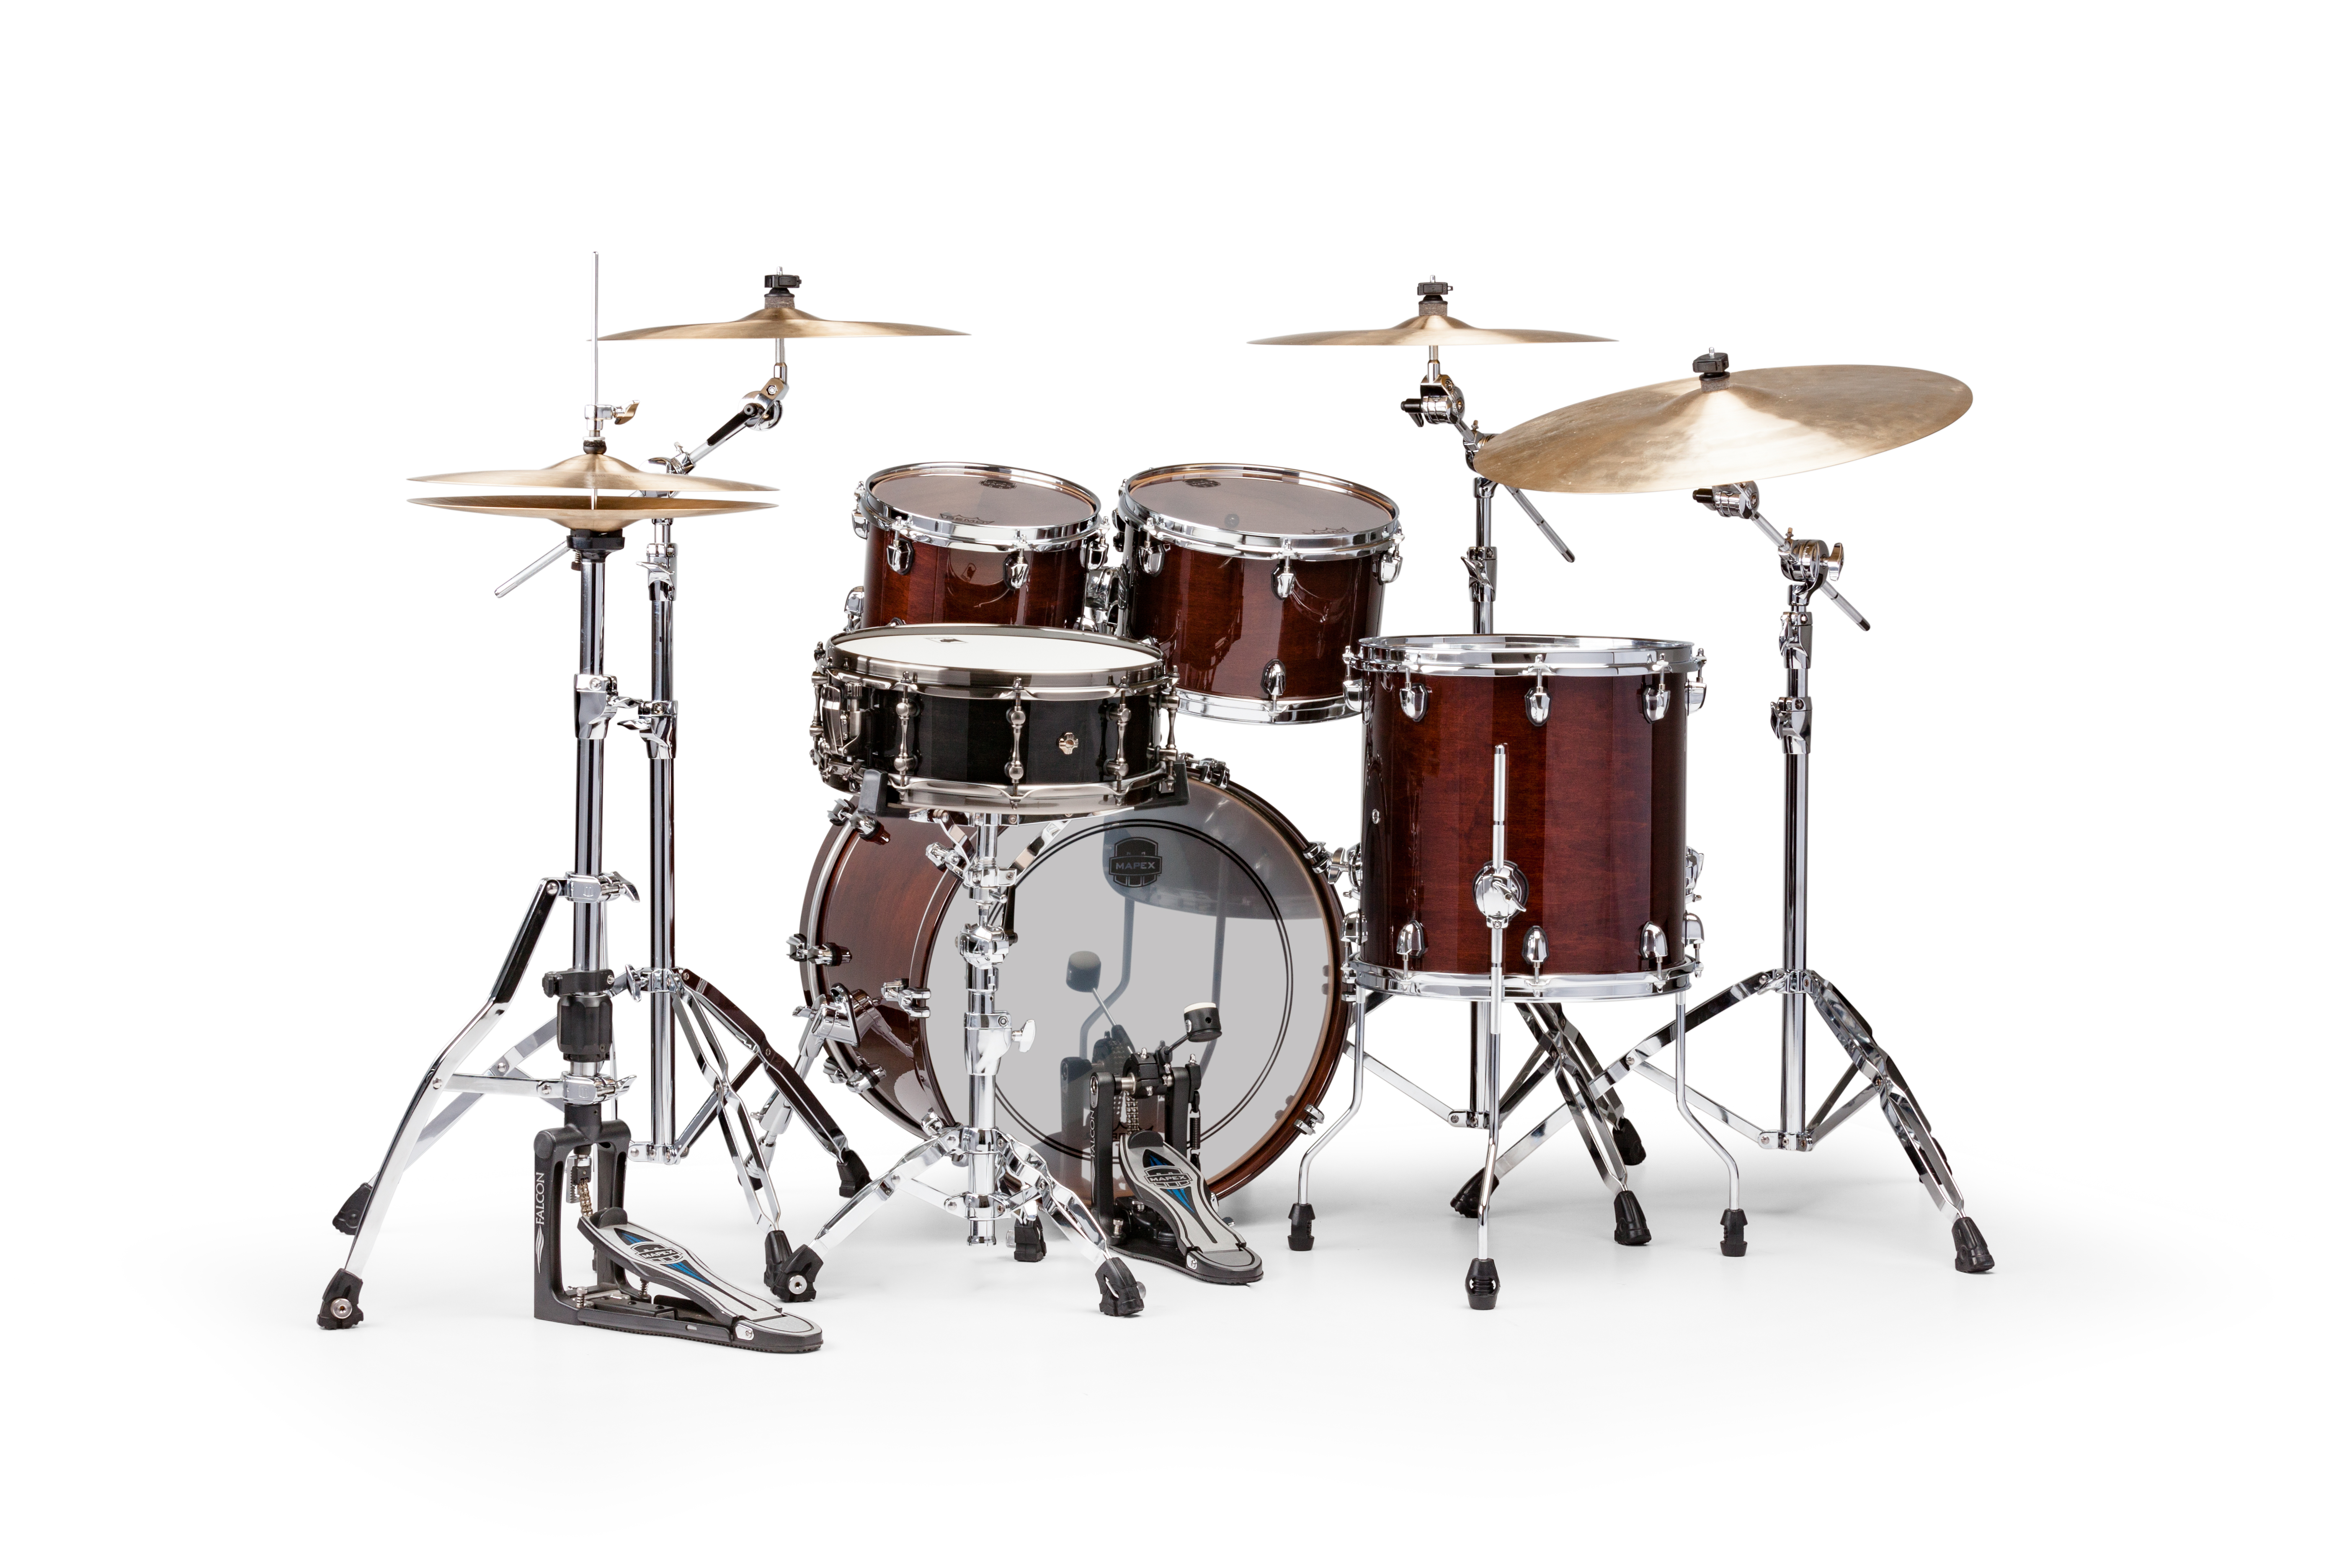 Mapex Saturn V MH Fusion 4-piece shell pack with SONIClear Edge - SV504XTW - Transparent Espresso Walnut